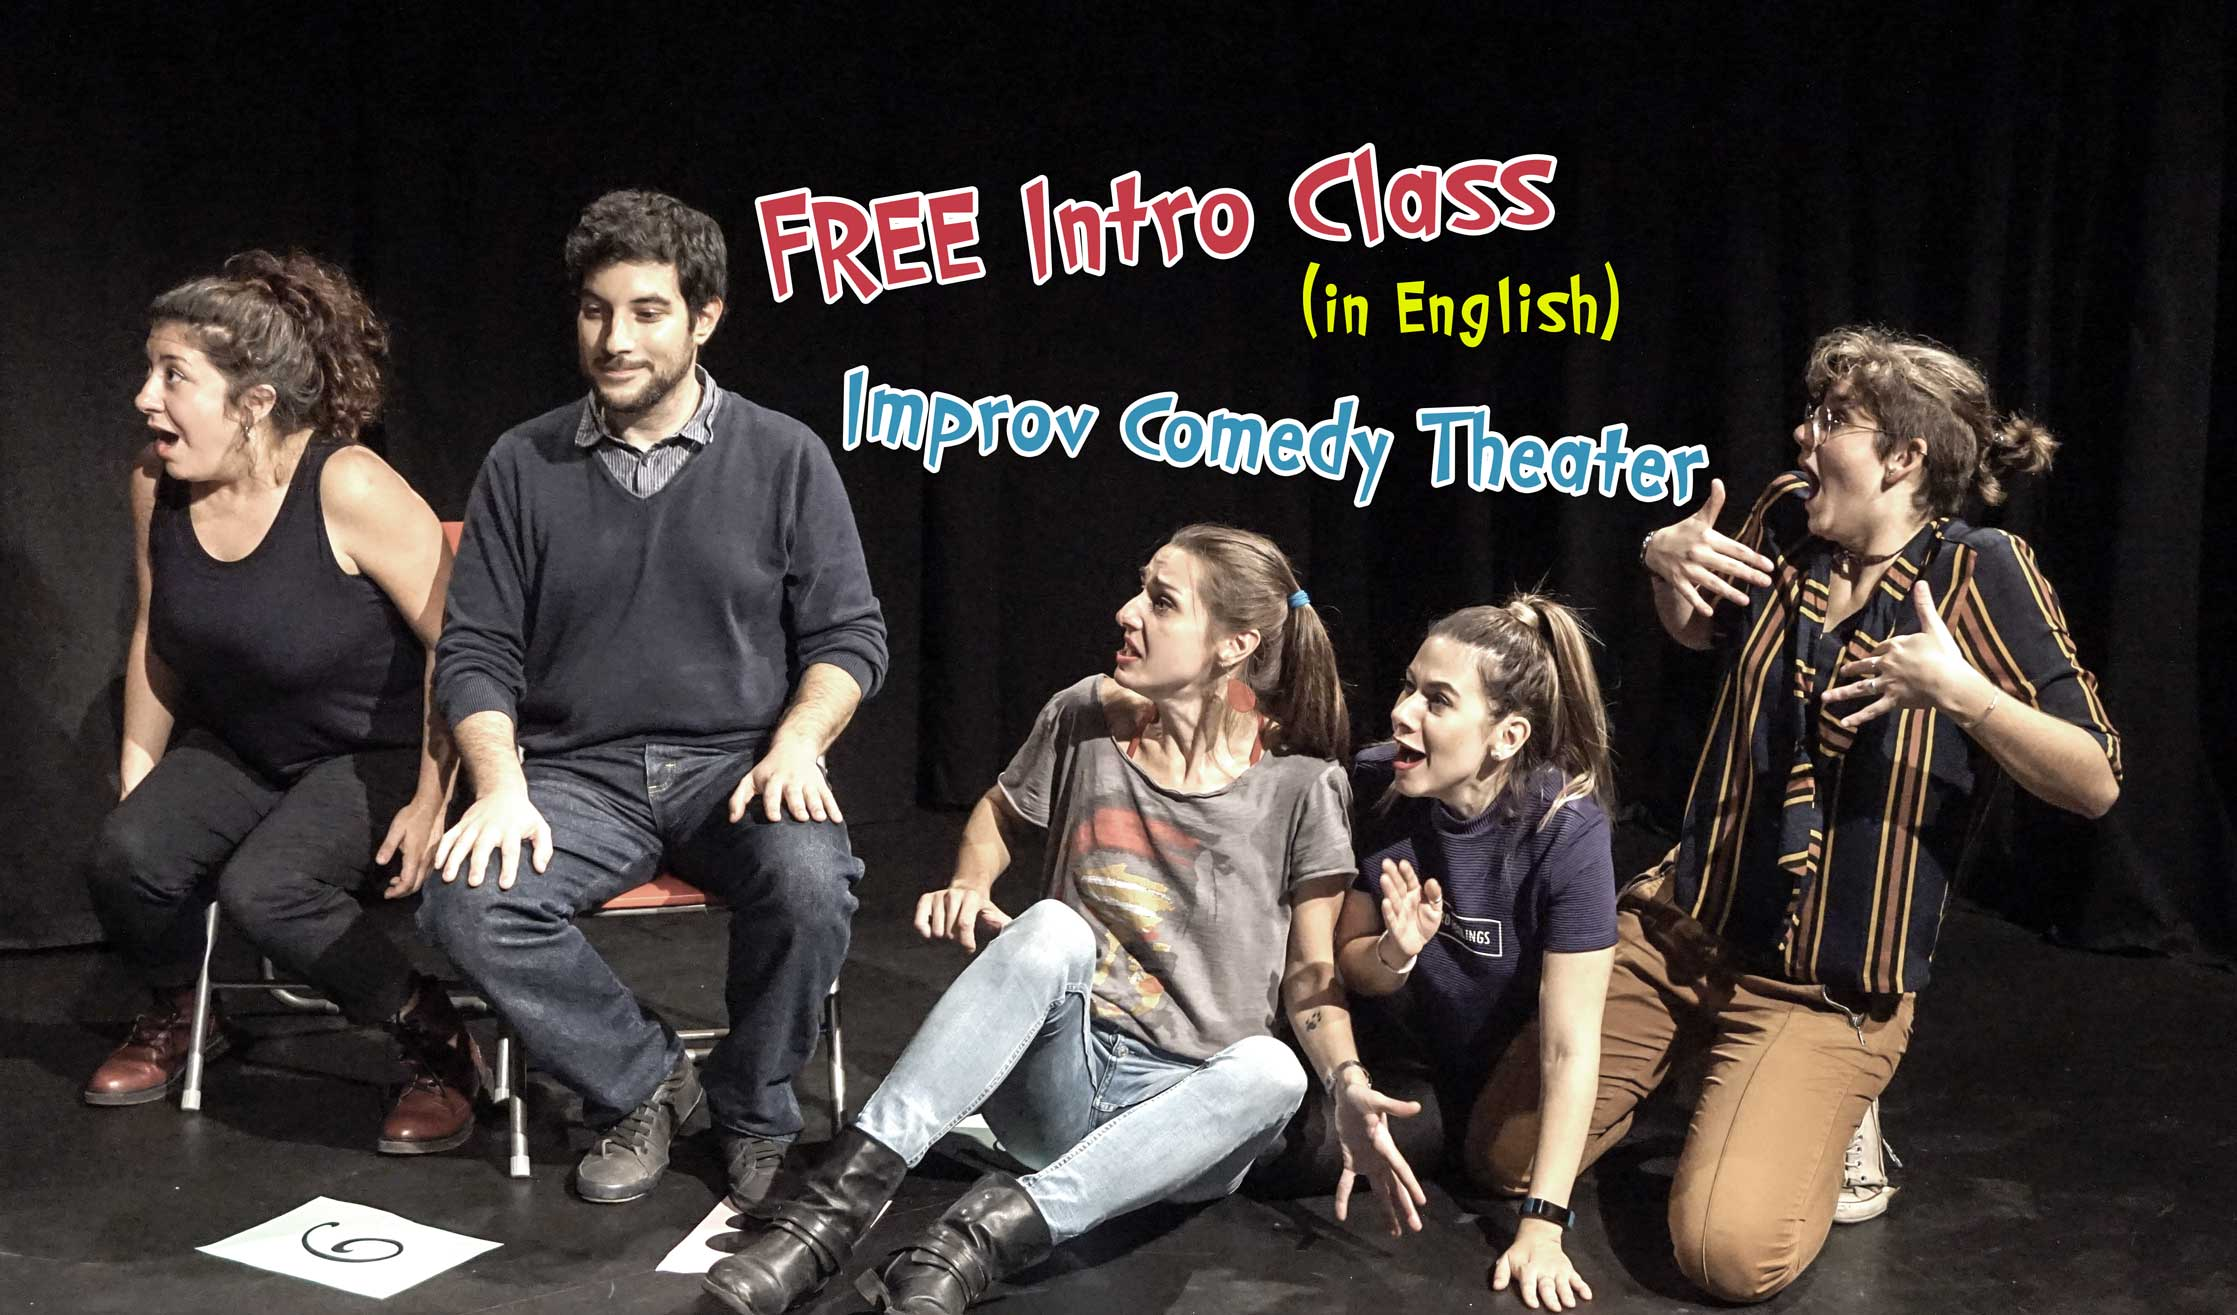 Free Introductory Improv Comedy Theater Class (In English)